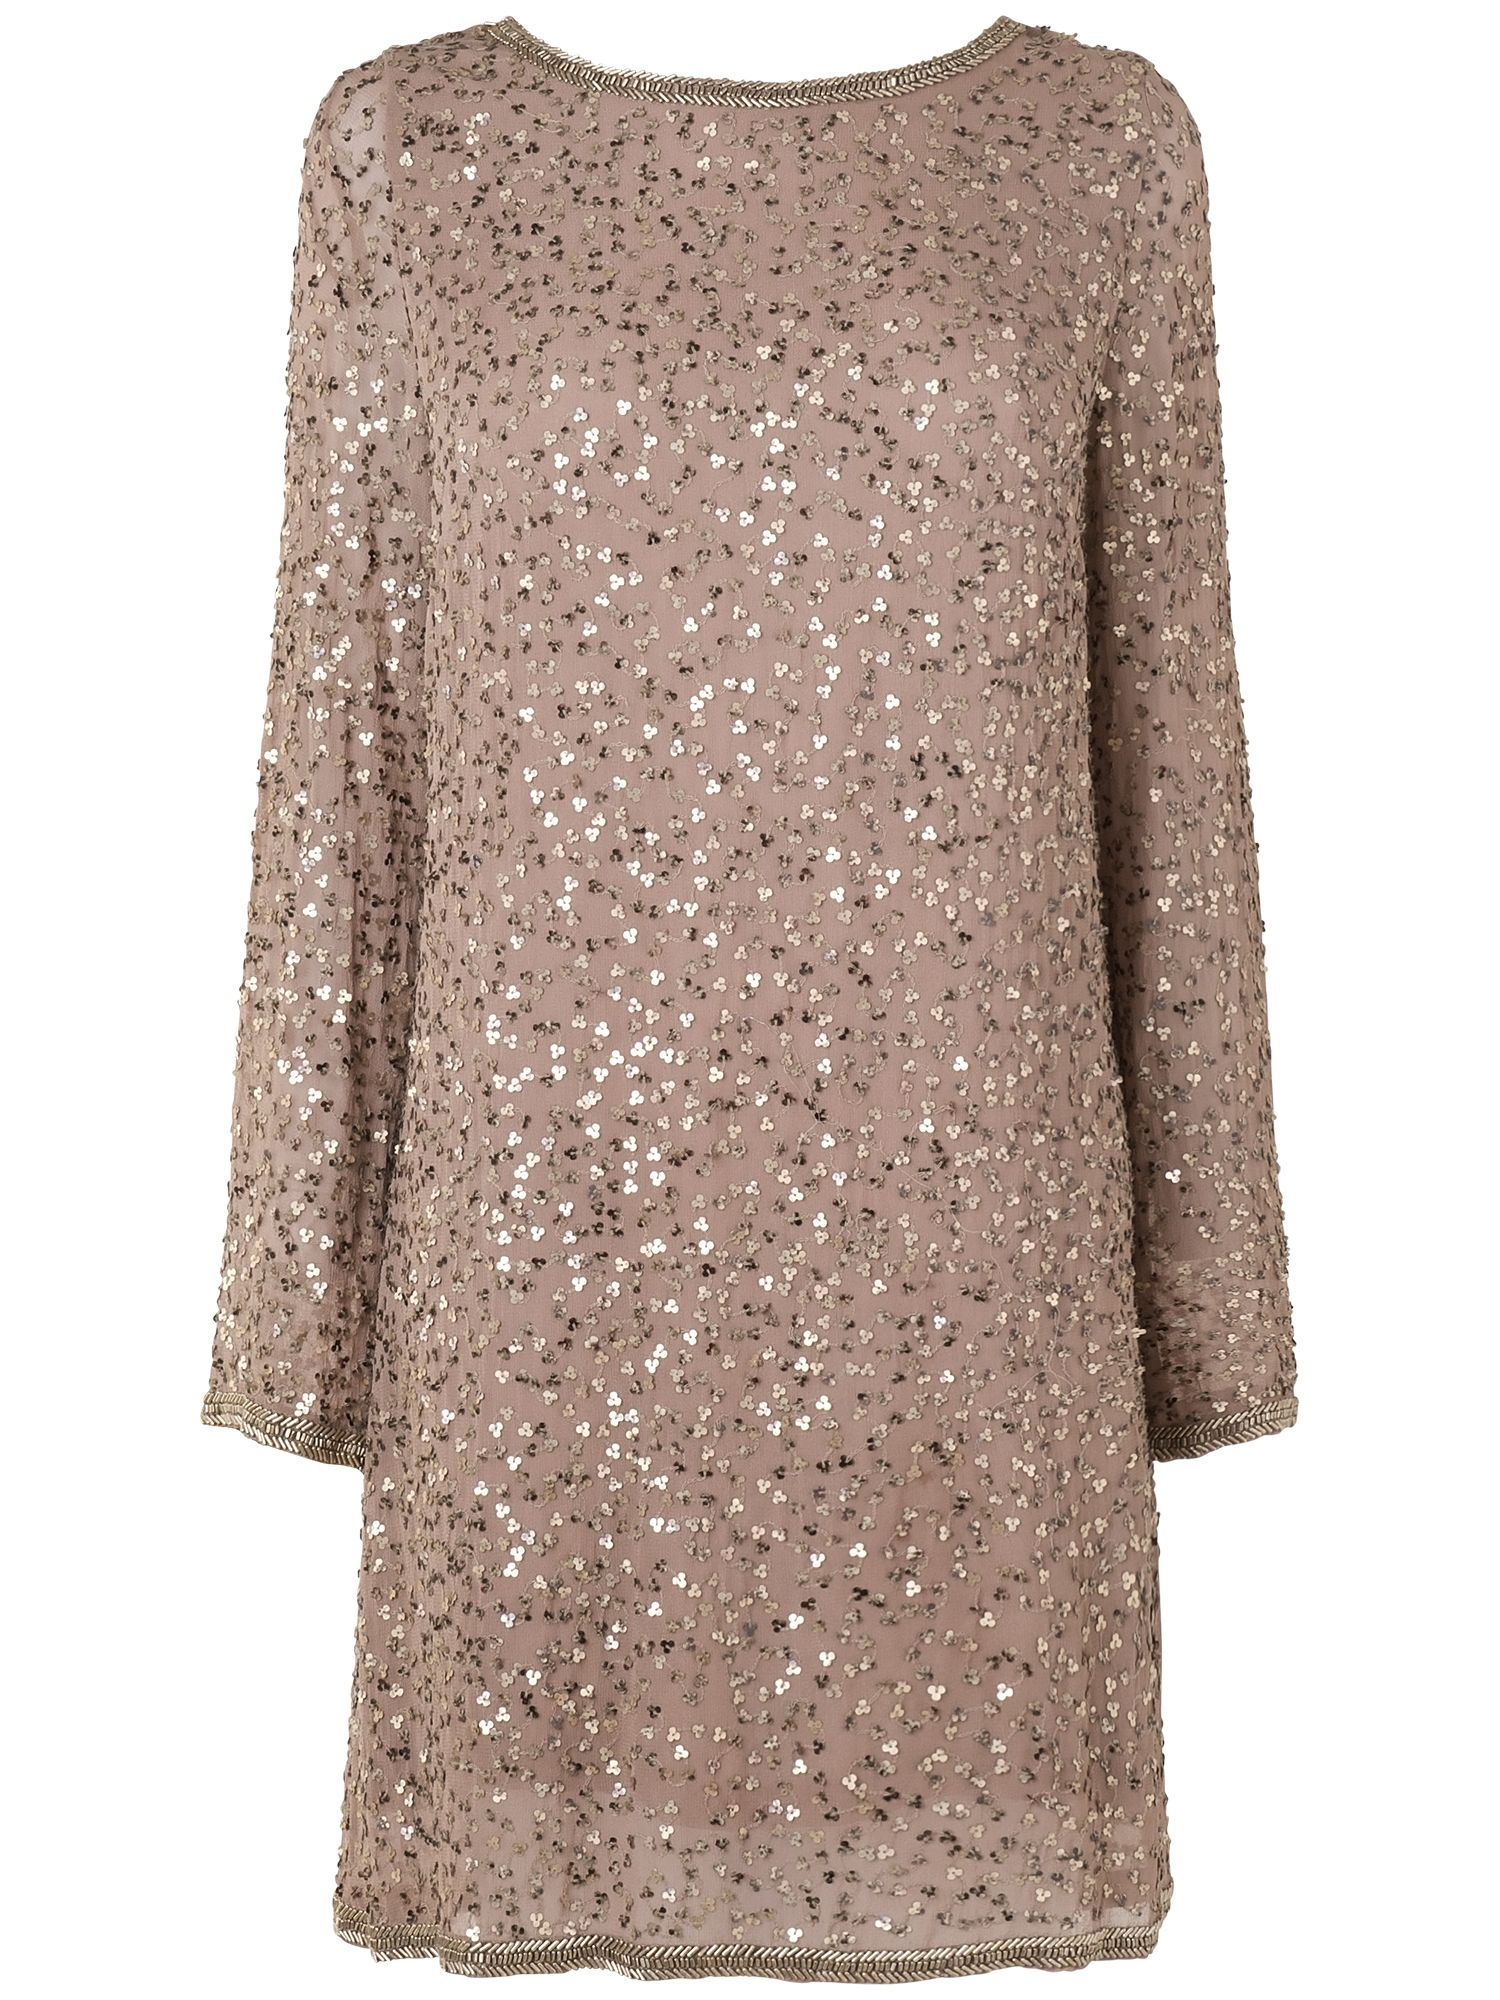 Susanna sequin dress